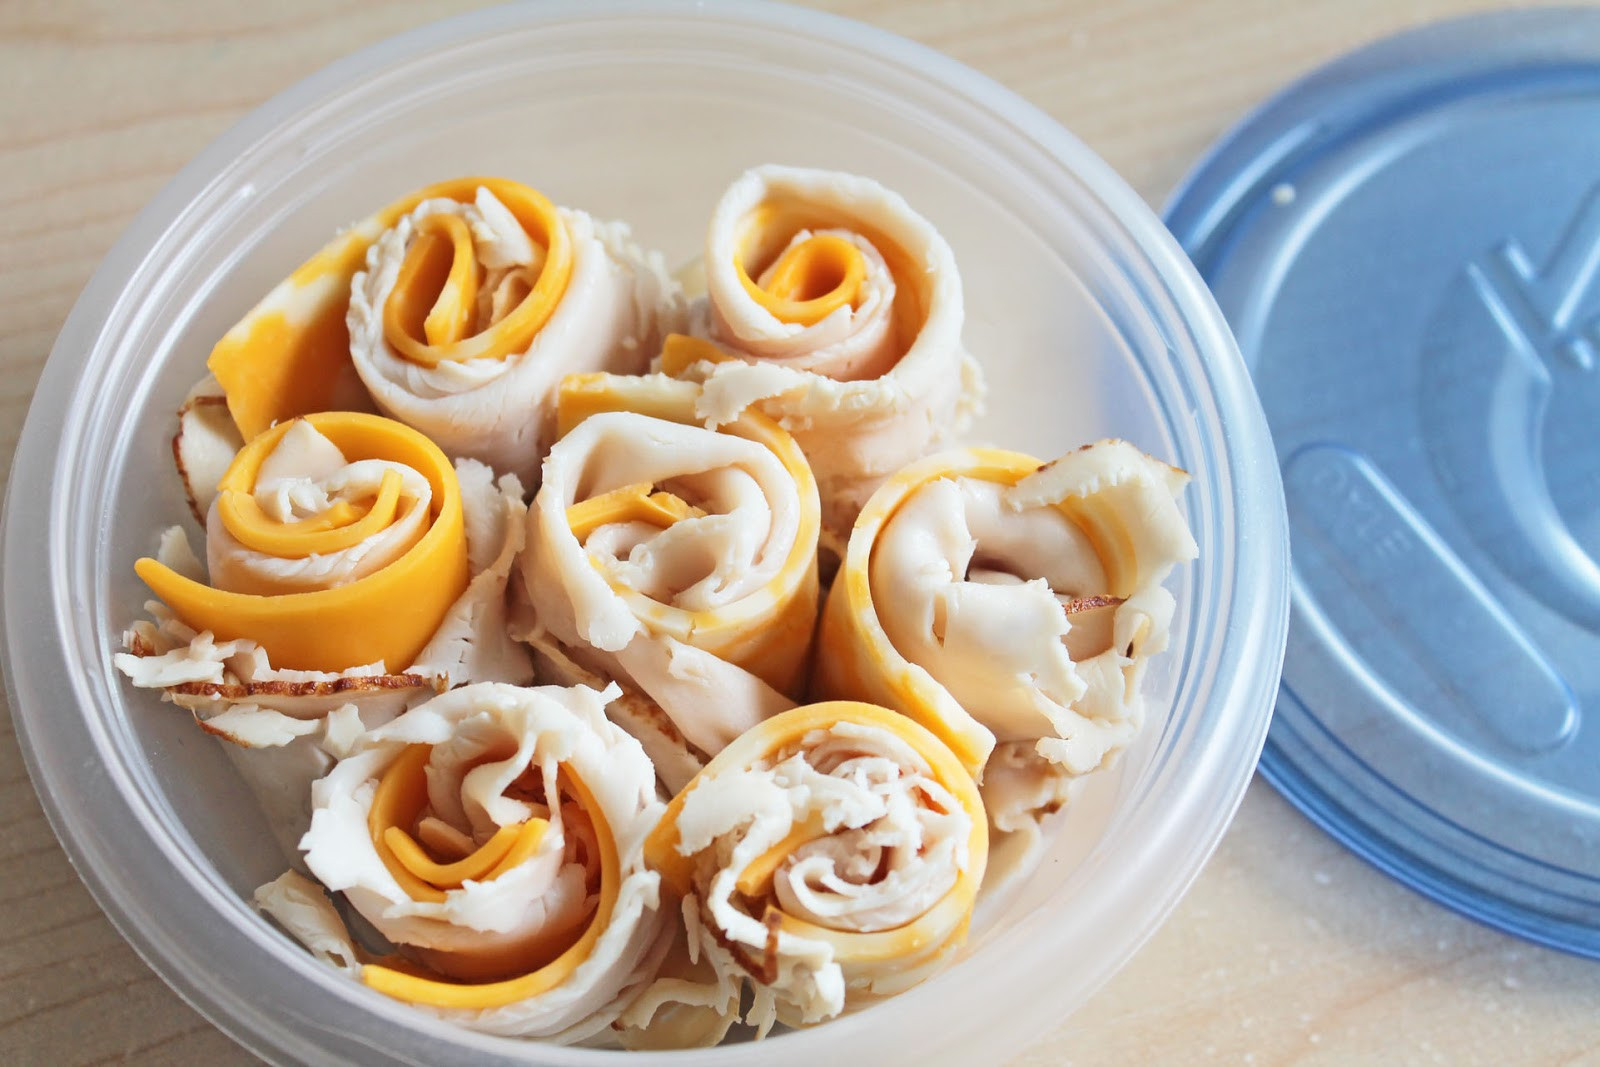 Healthy Snacks For Work  Easy to Make Snacks Turkey and Cheese Rolls Recipe